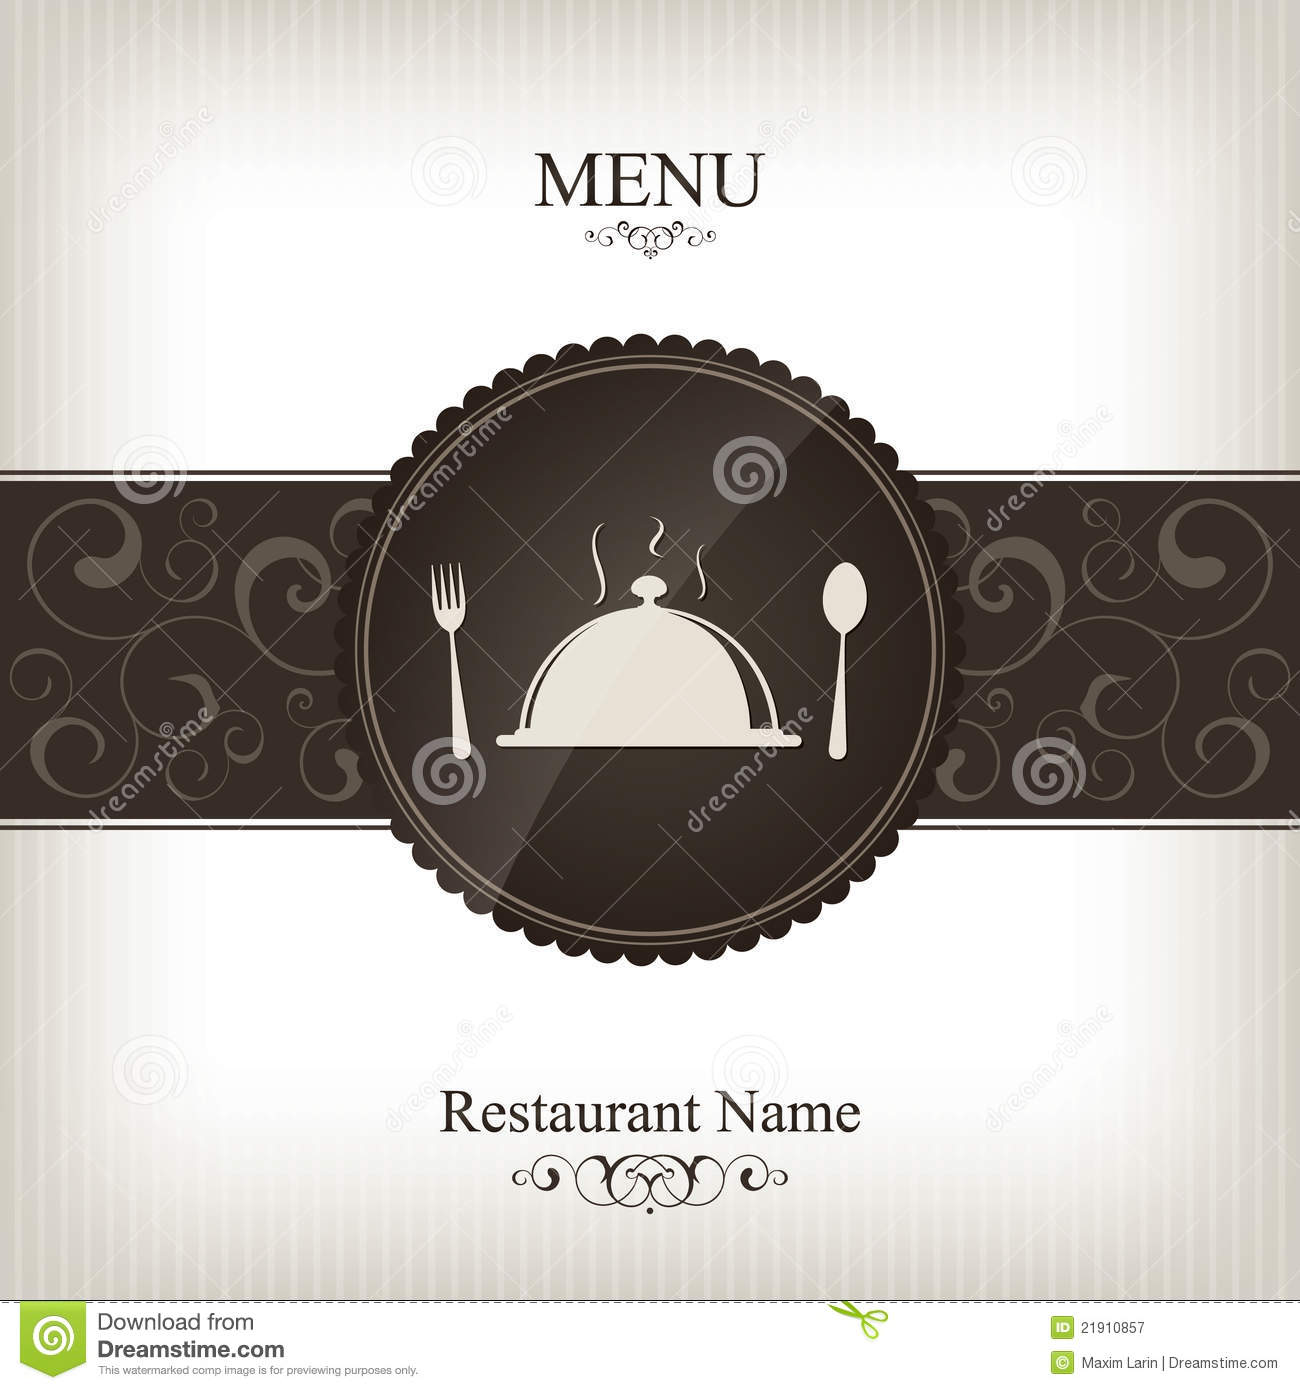 Restaurant Menu Design Stock Vector Illustration Of Card 21910857